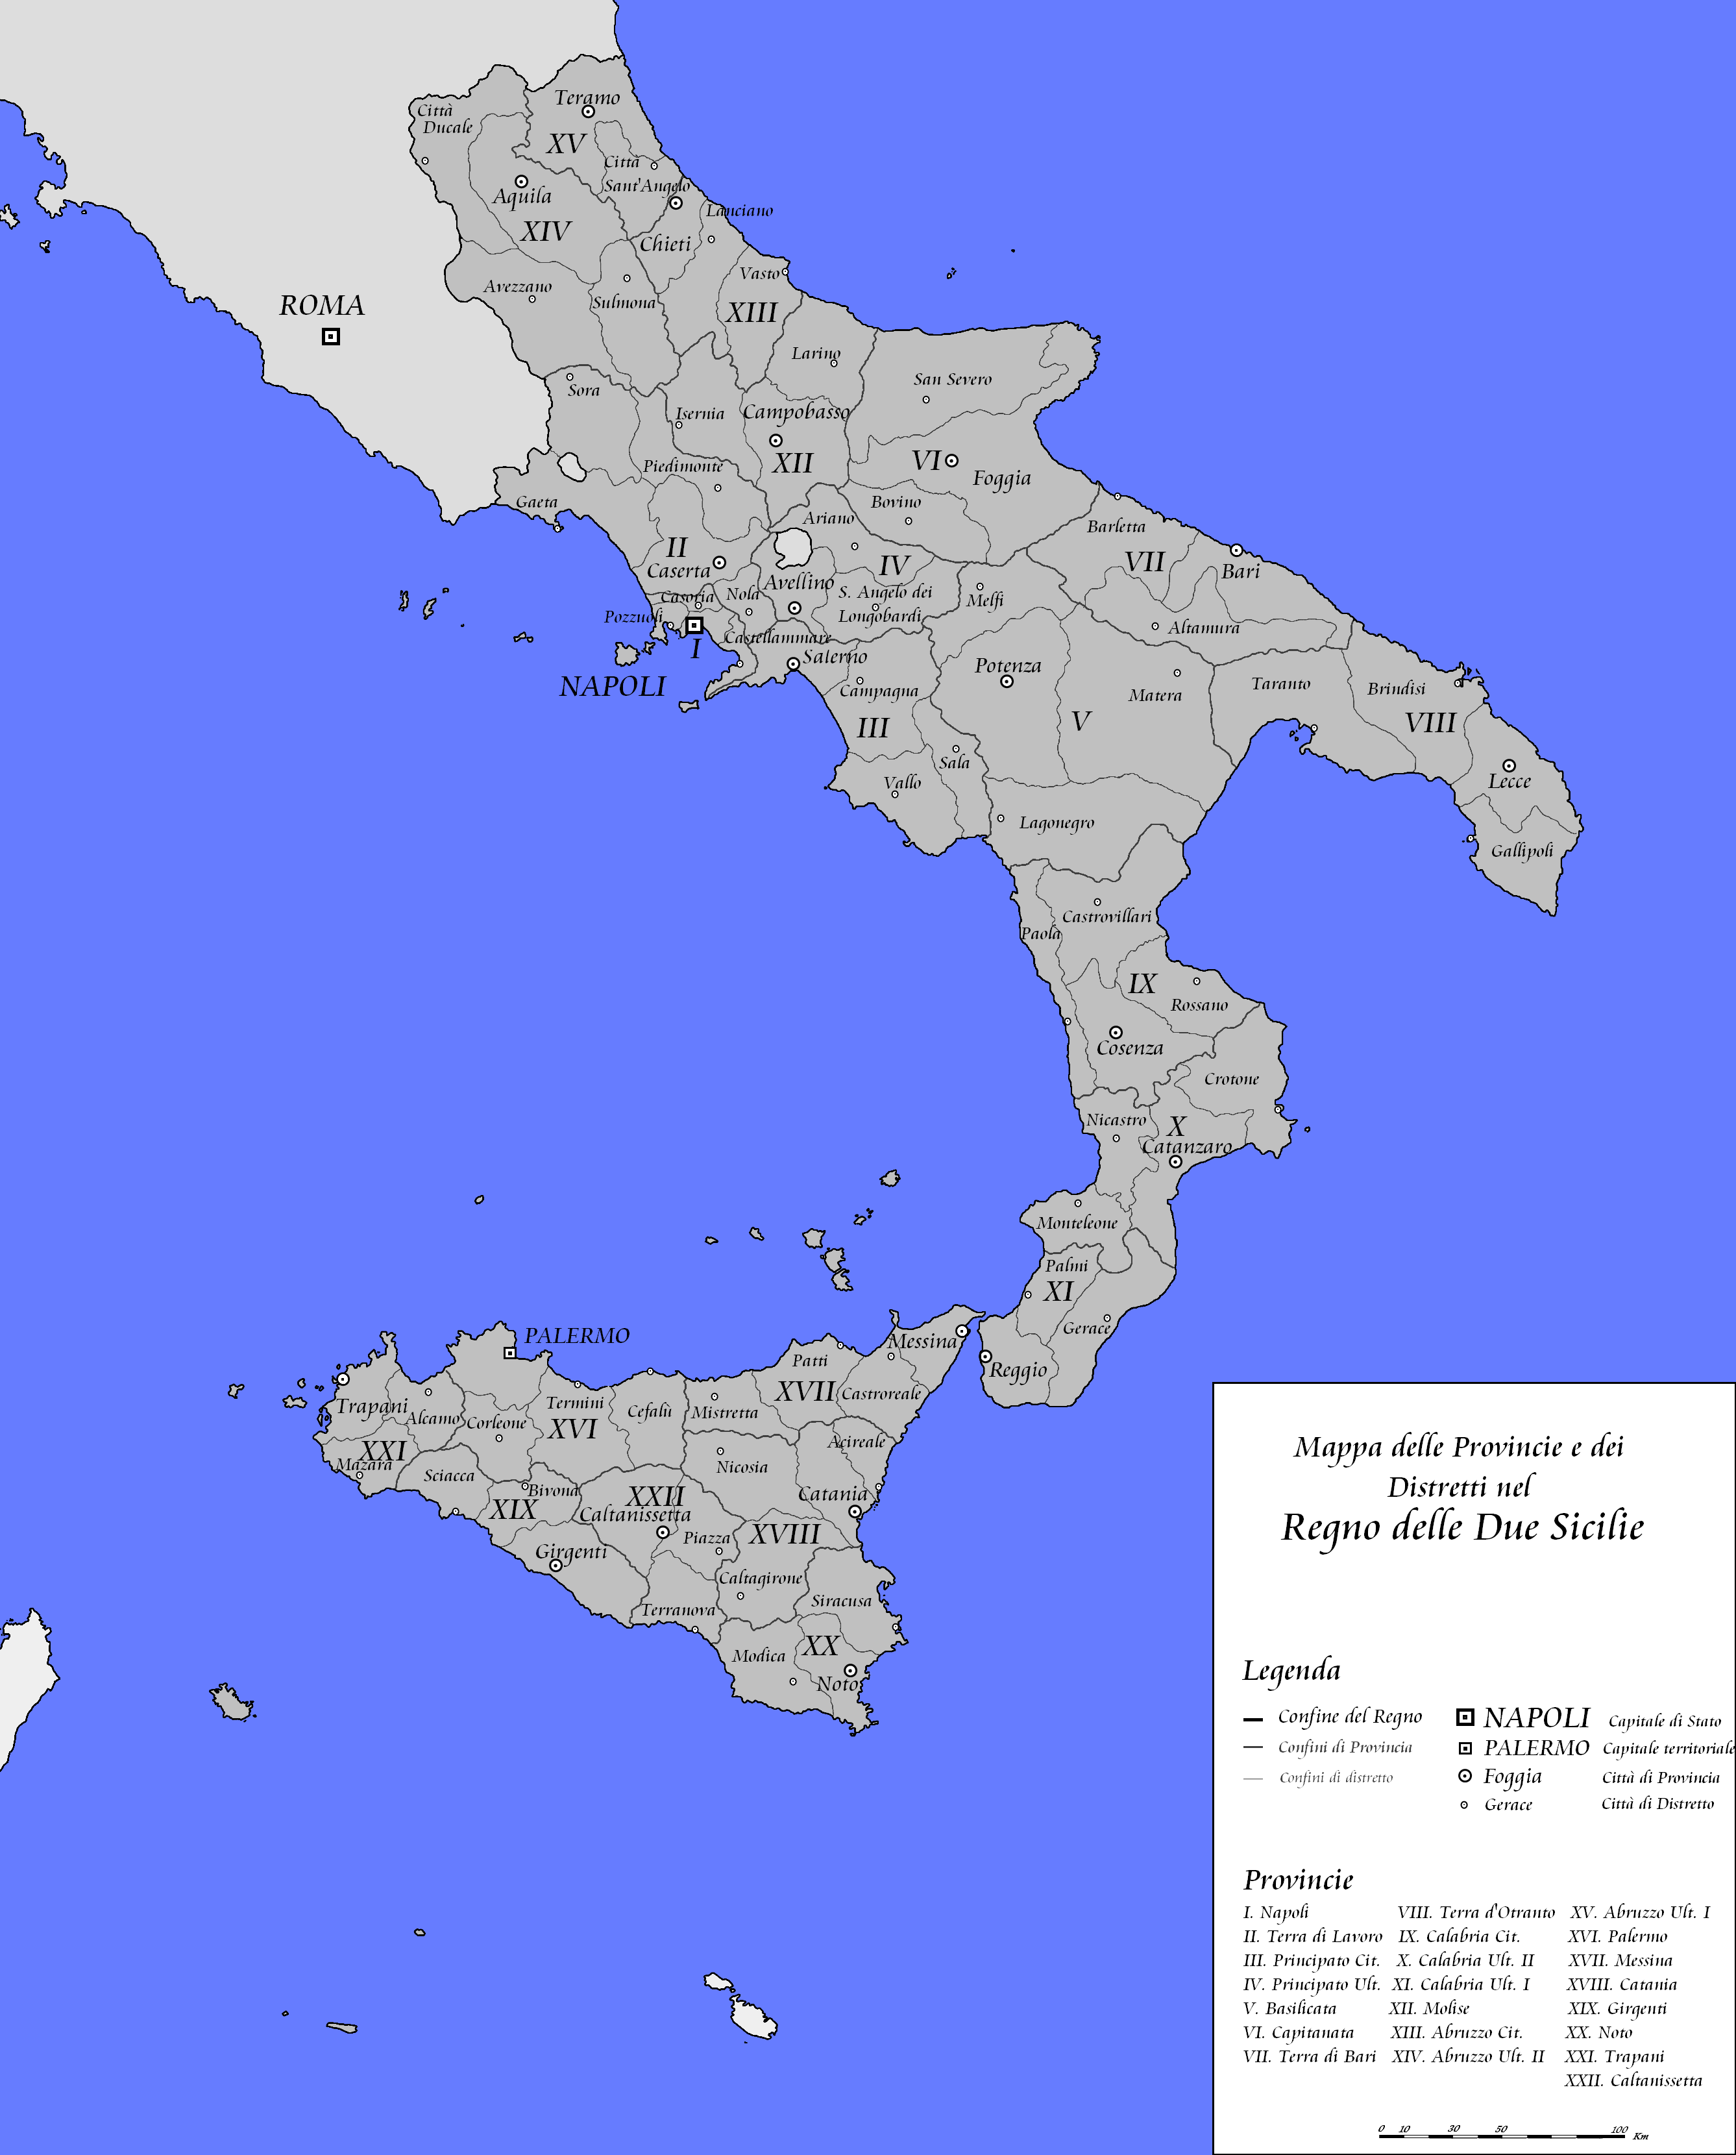 THE REIGN OF THE TWO SICILIES